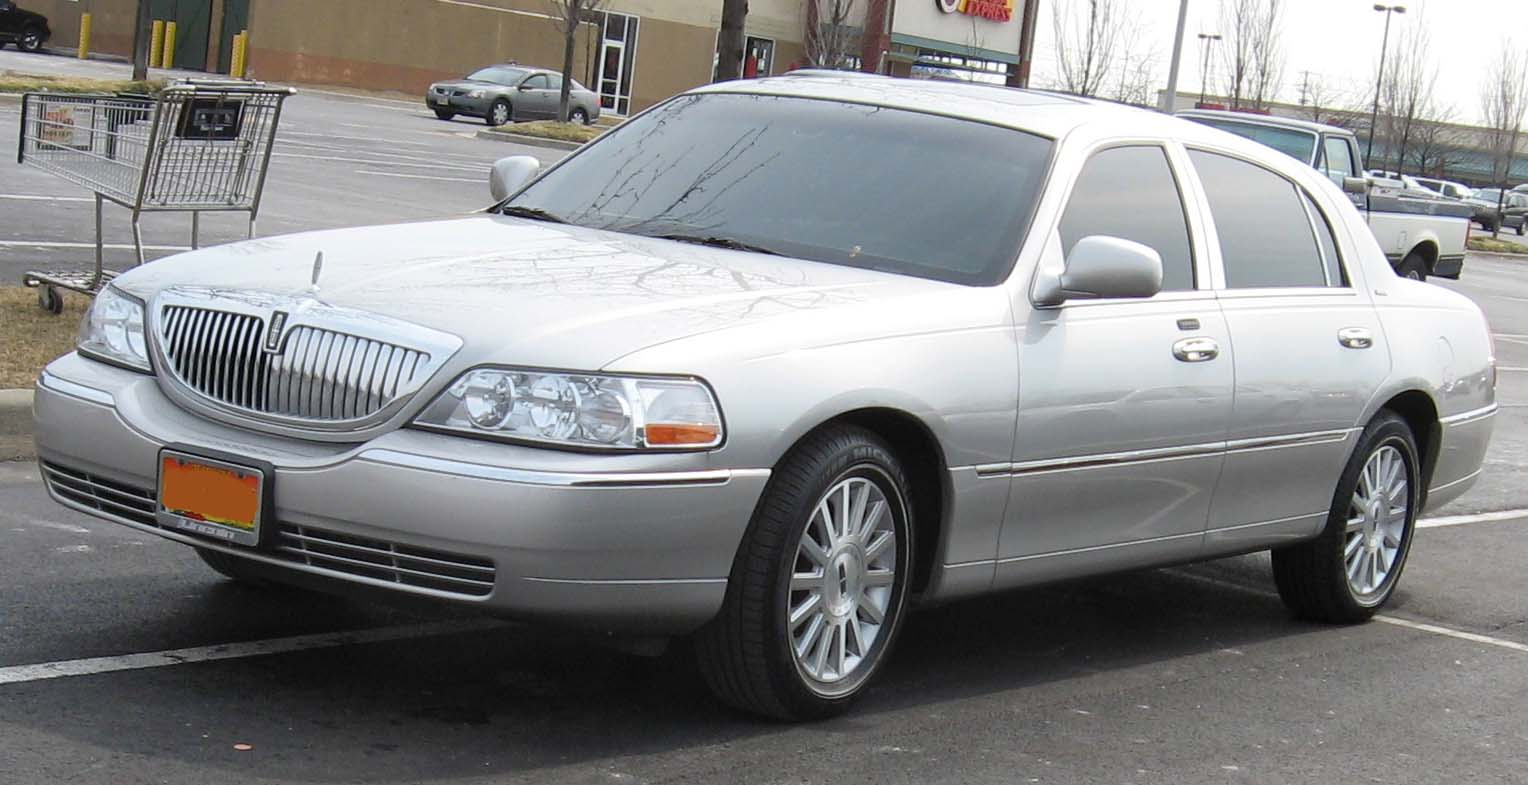 2007 lincoln town car size 105 kb resolution 1528x785 type link file src